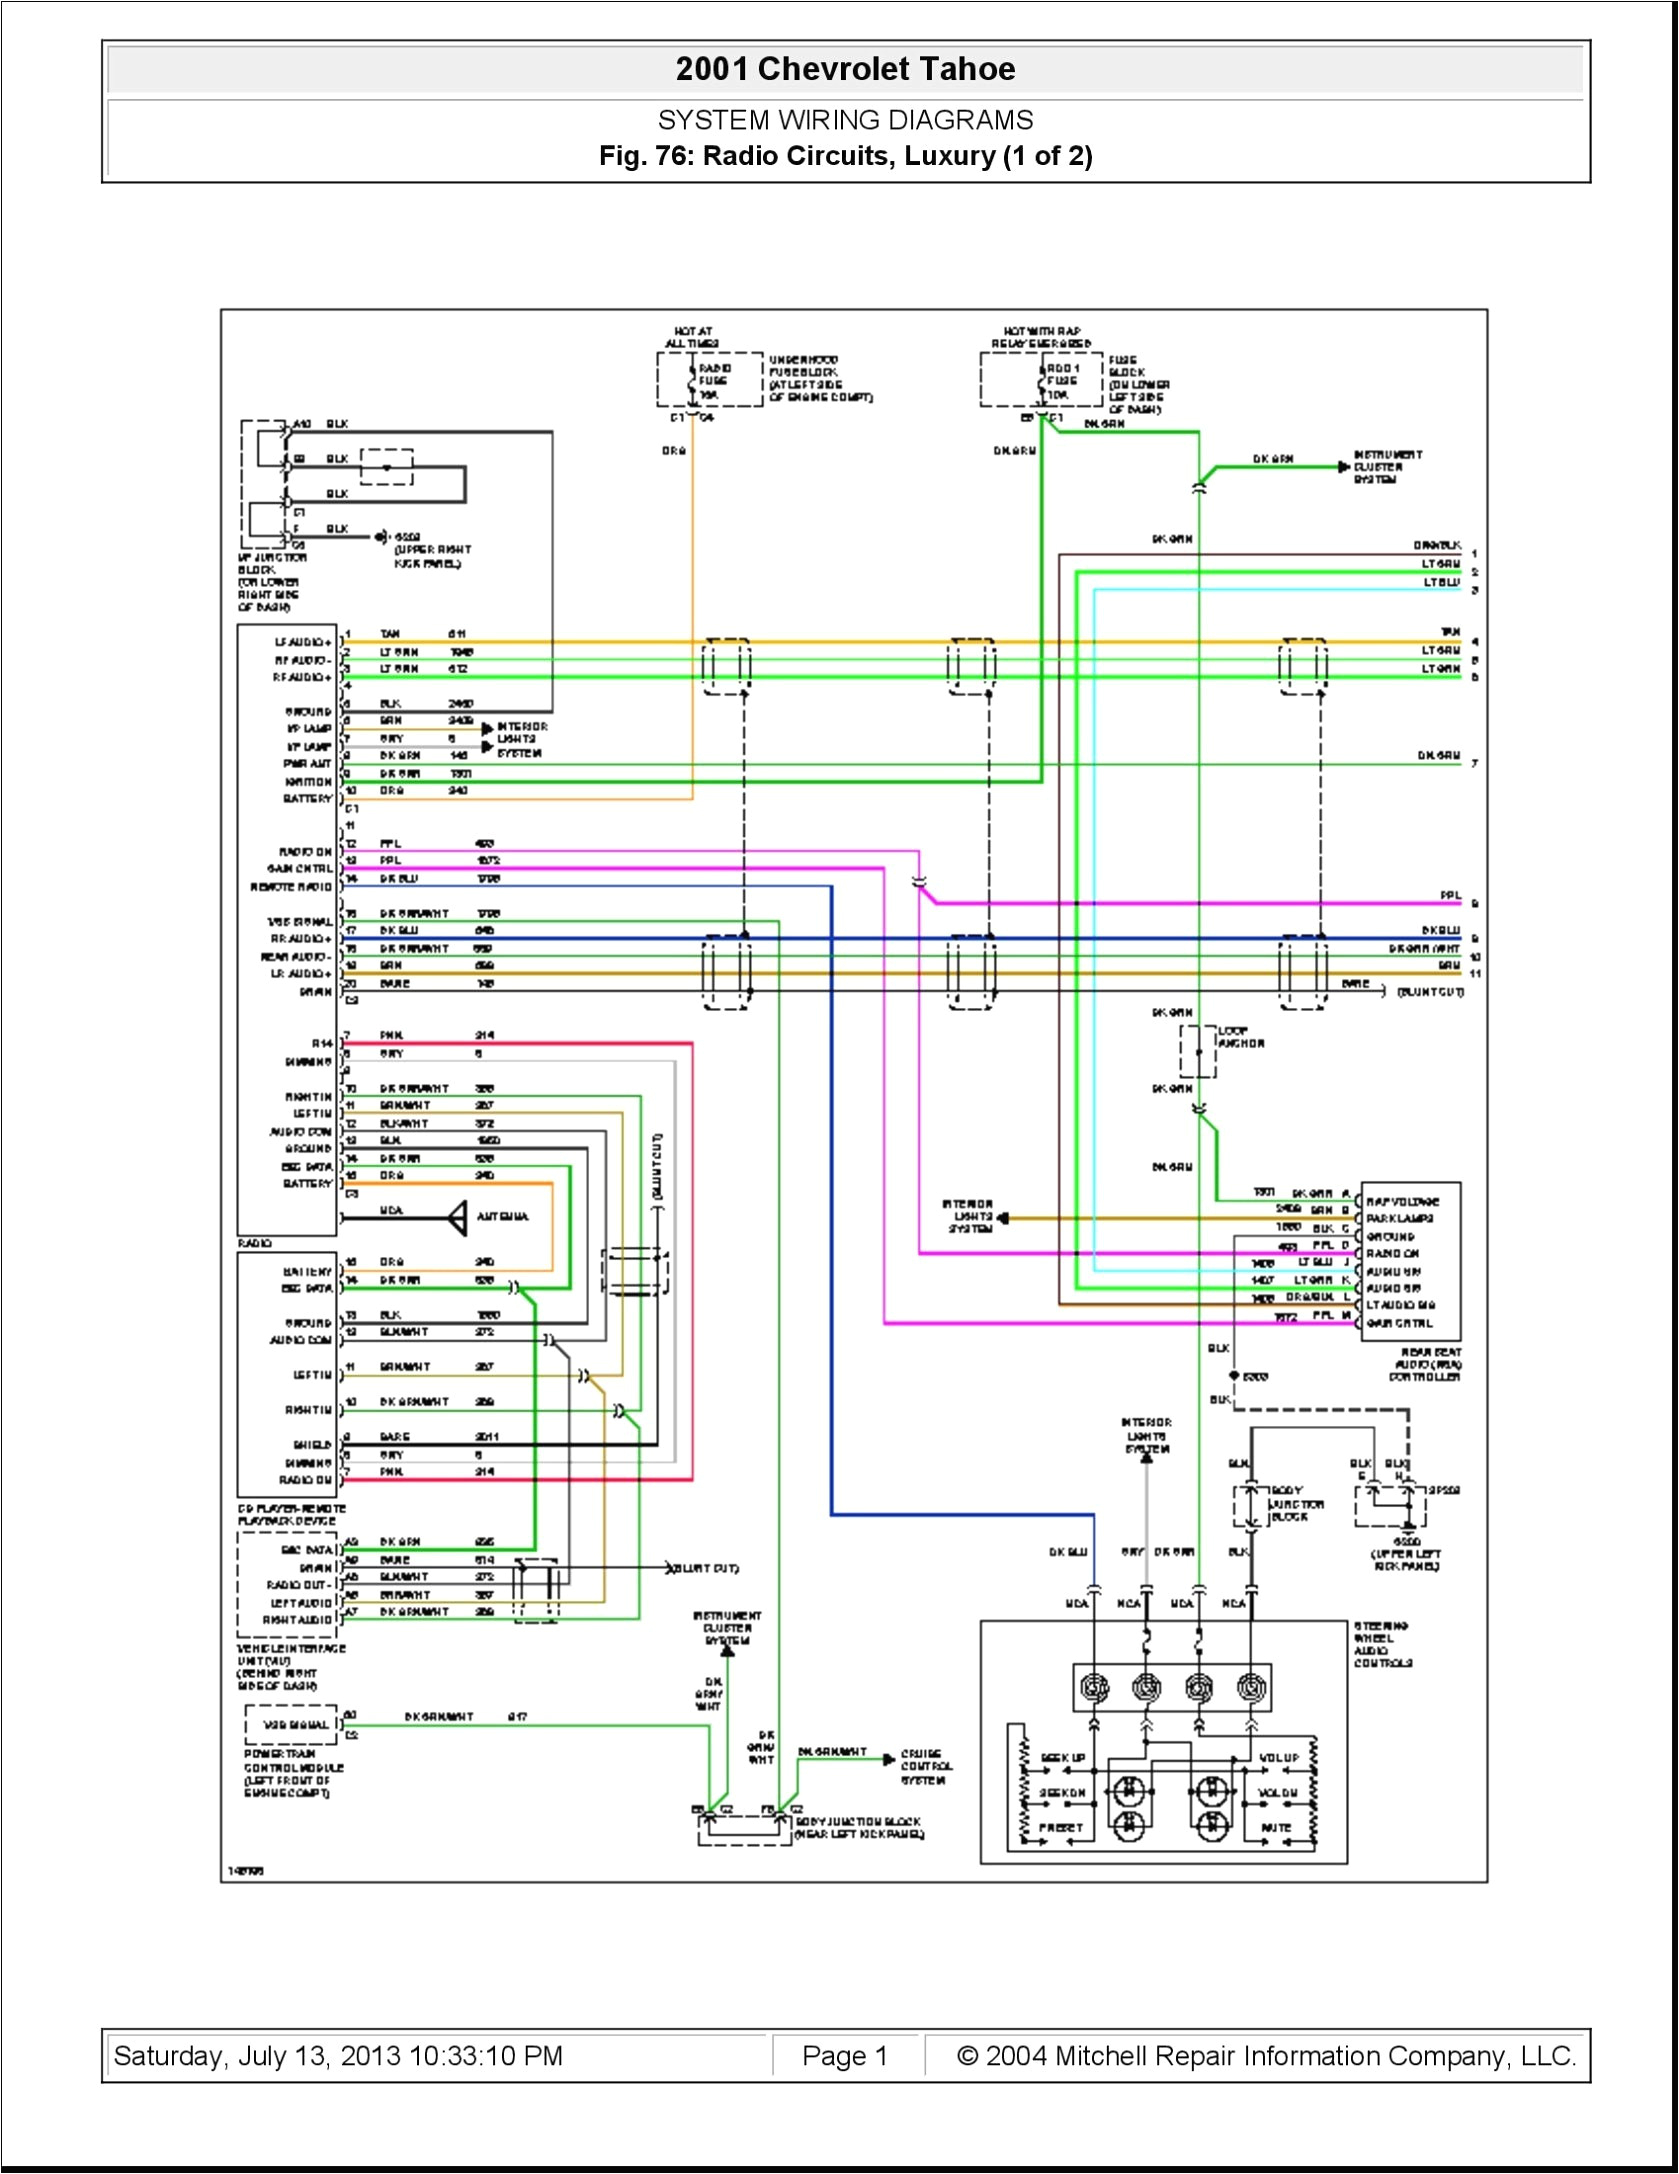 2001 chevy tahoe trailer wiring diagram wiring diagram sample gallery of chevy trailer wiring harness diagram